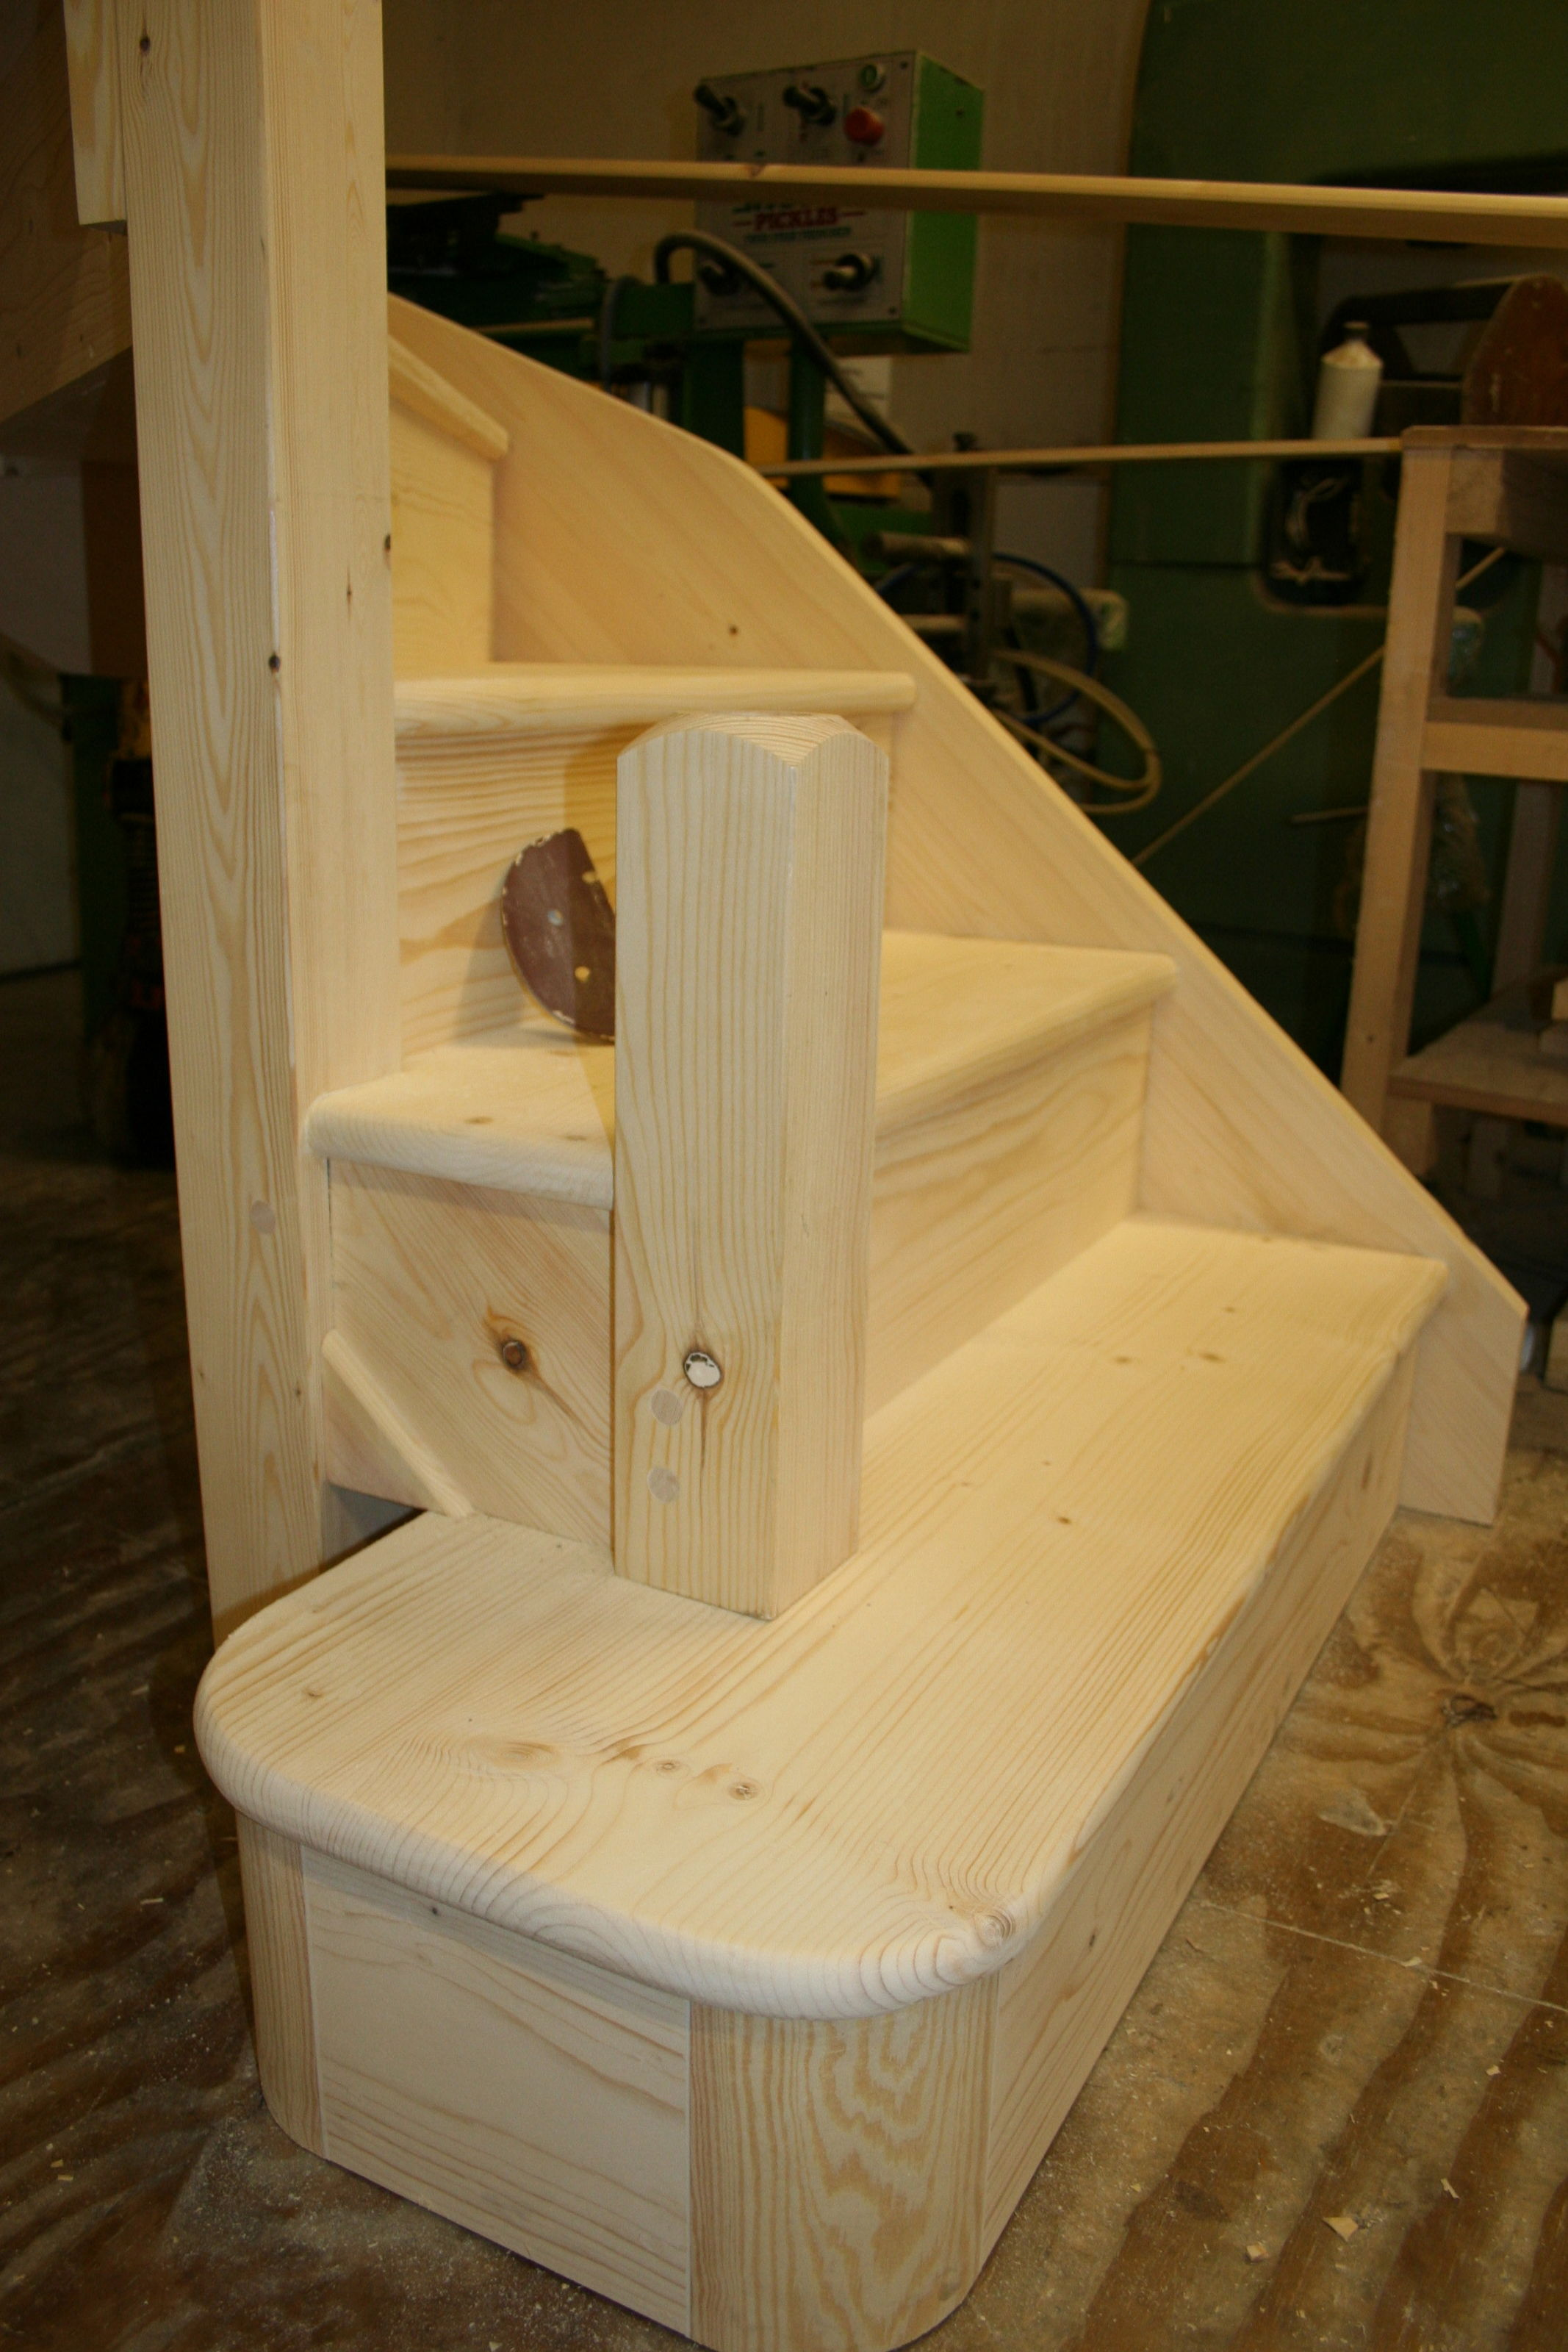 Softwood Closed-Tread Stair with Pine Curtail Bottom Step; Image 1271